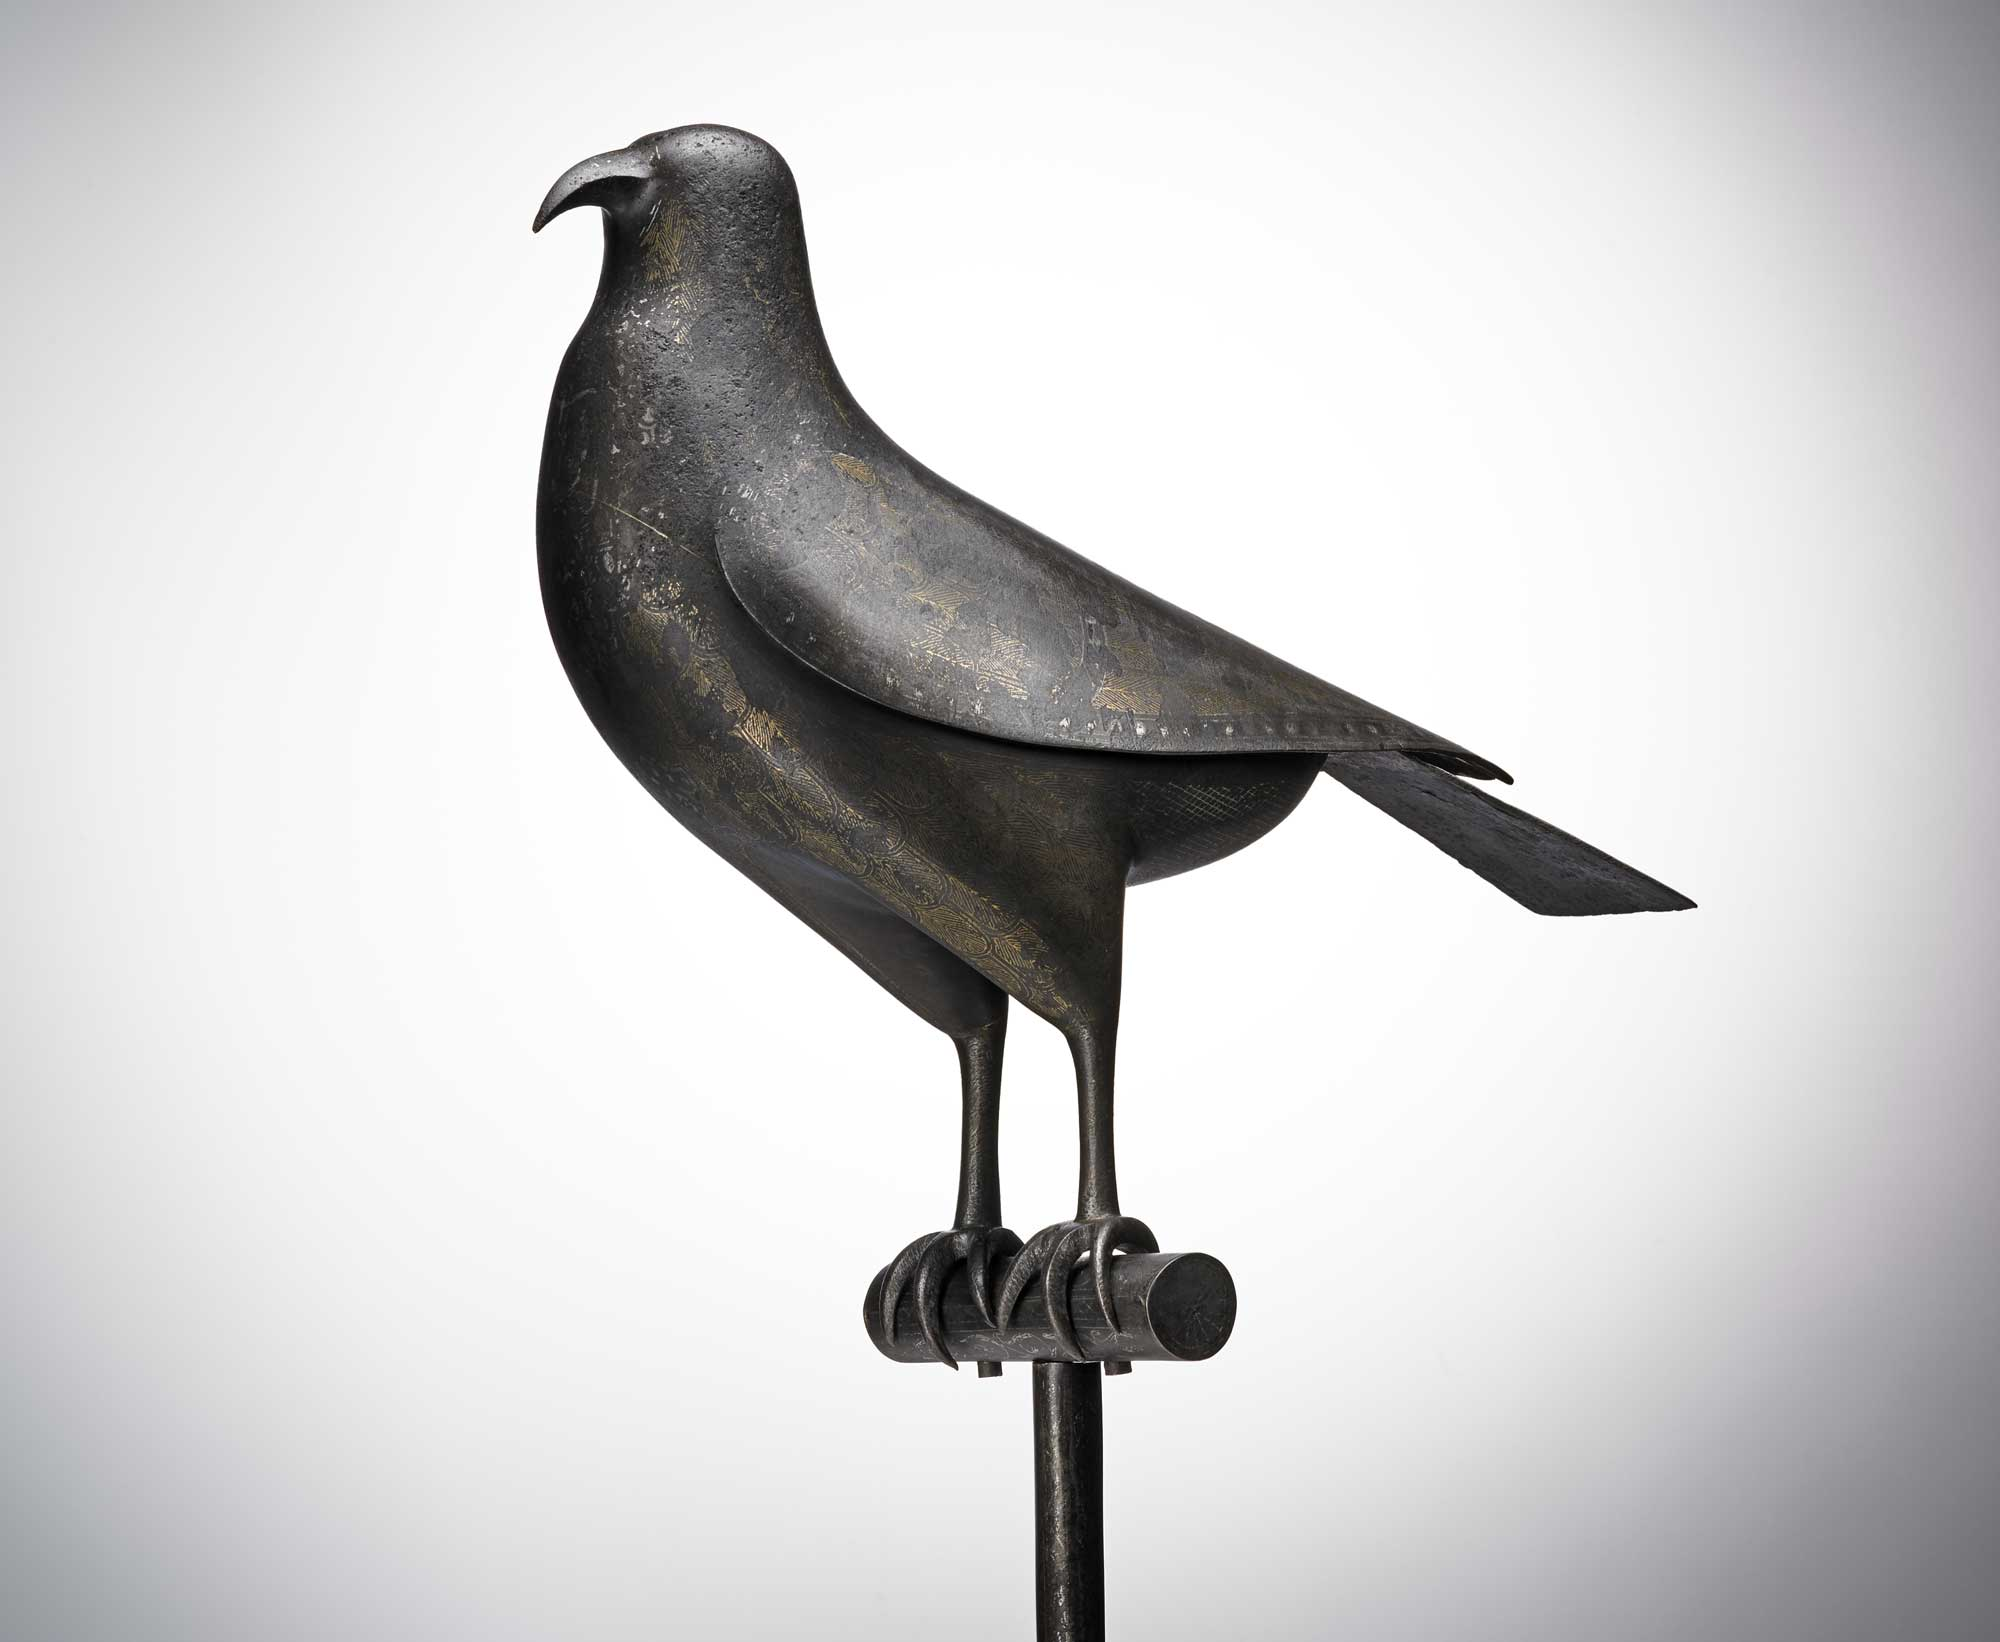 a photo of a metal bird inlaid with decoration